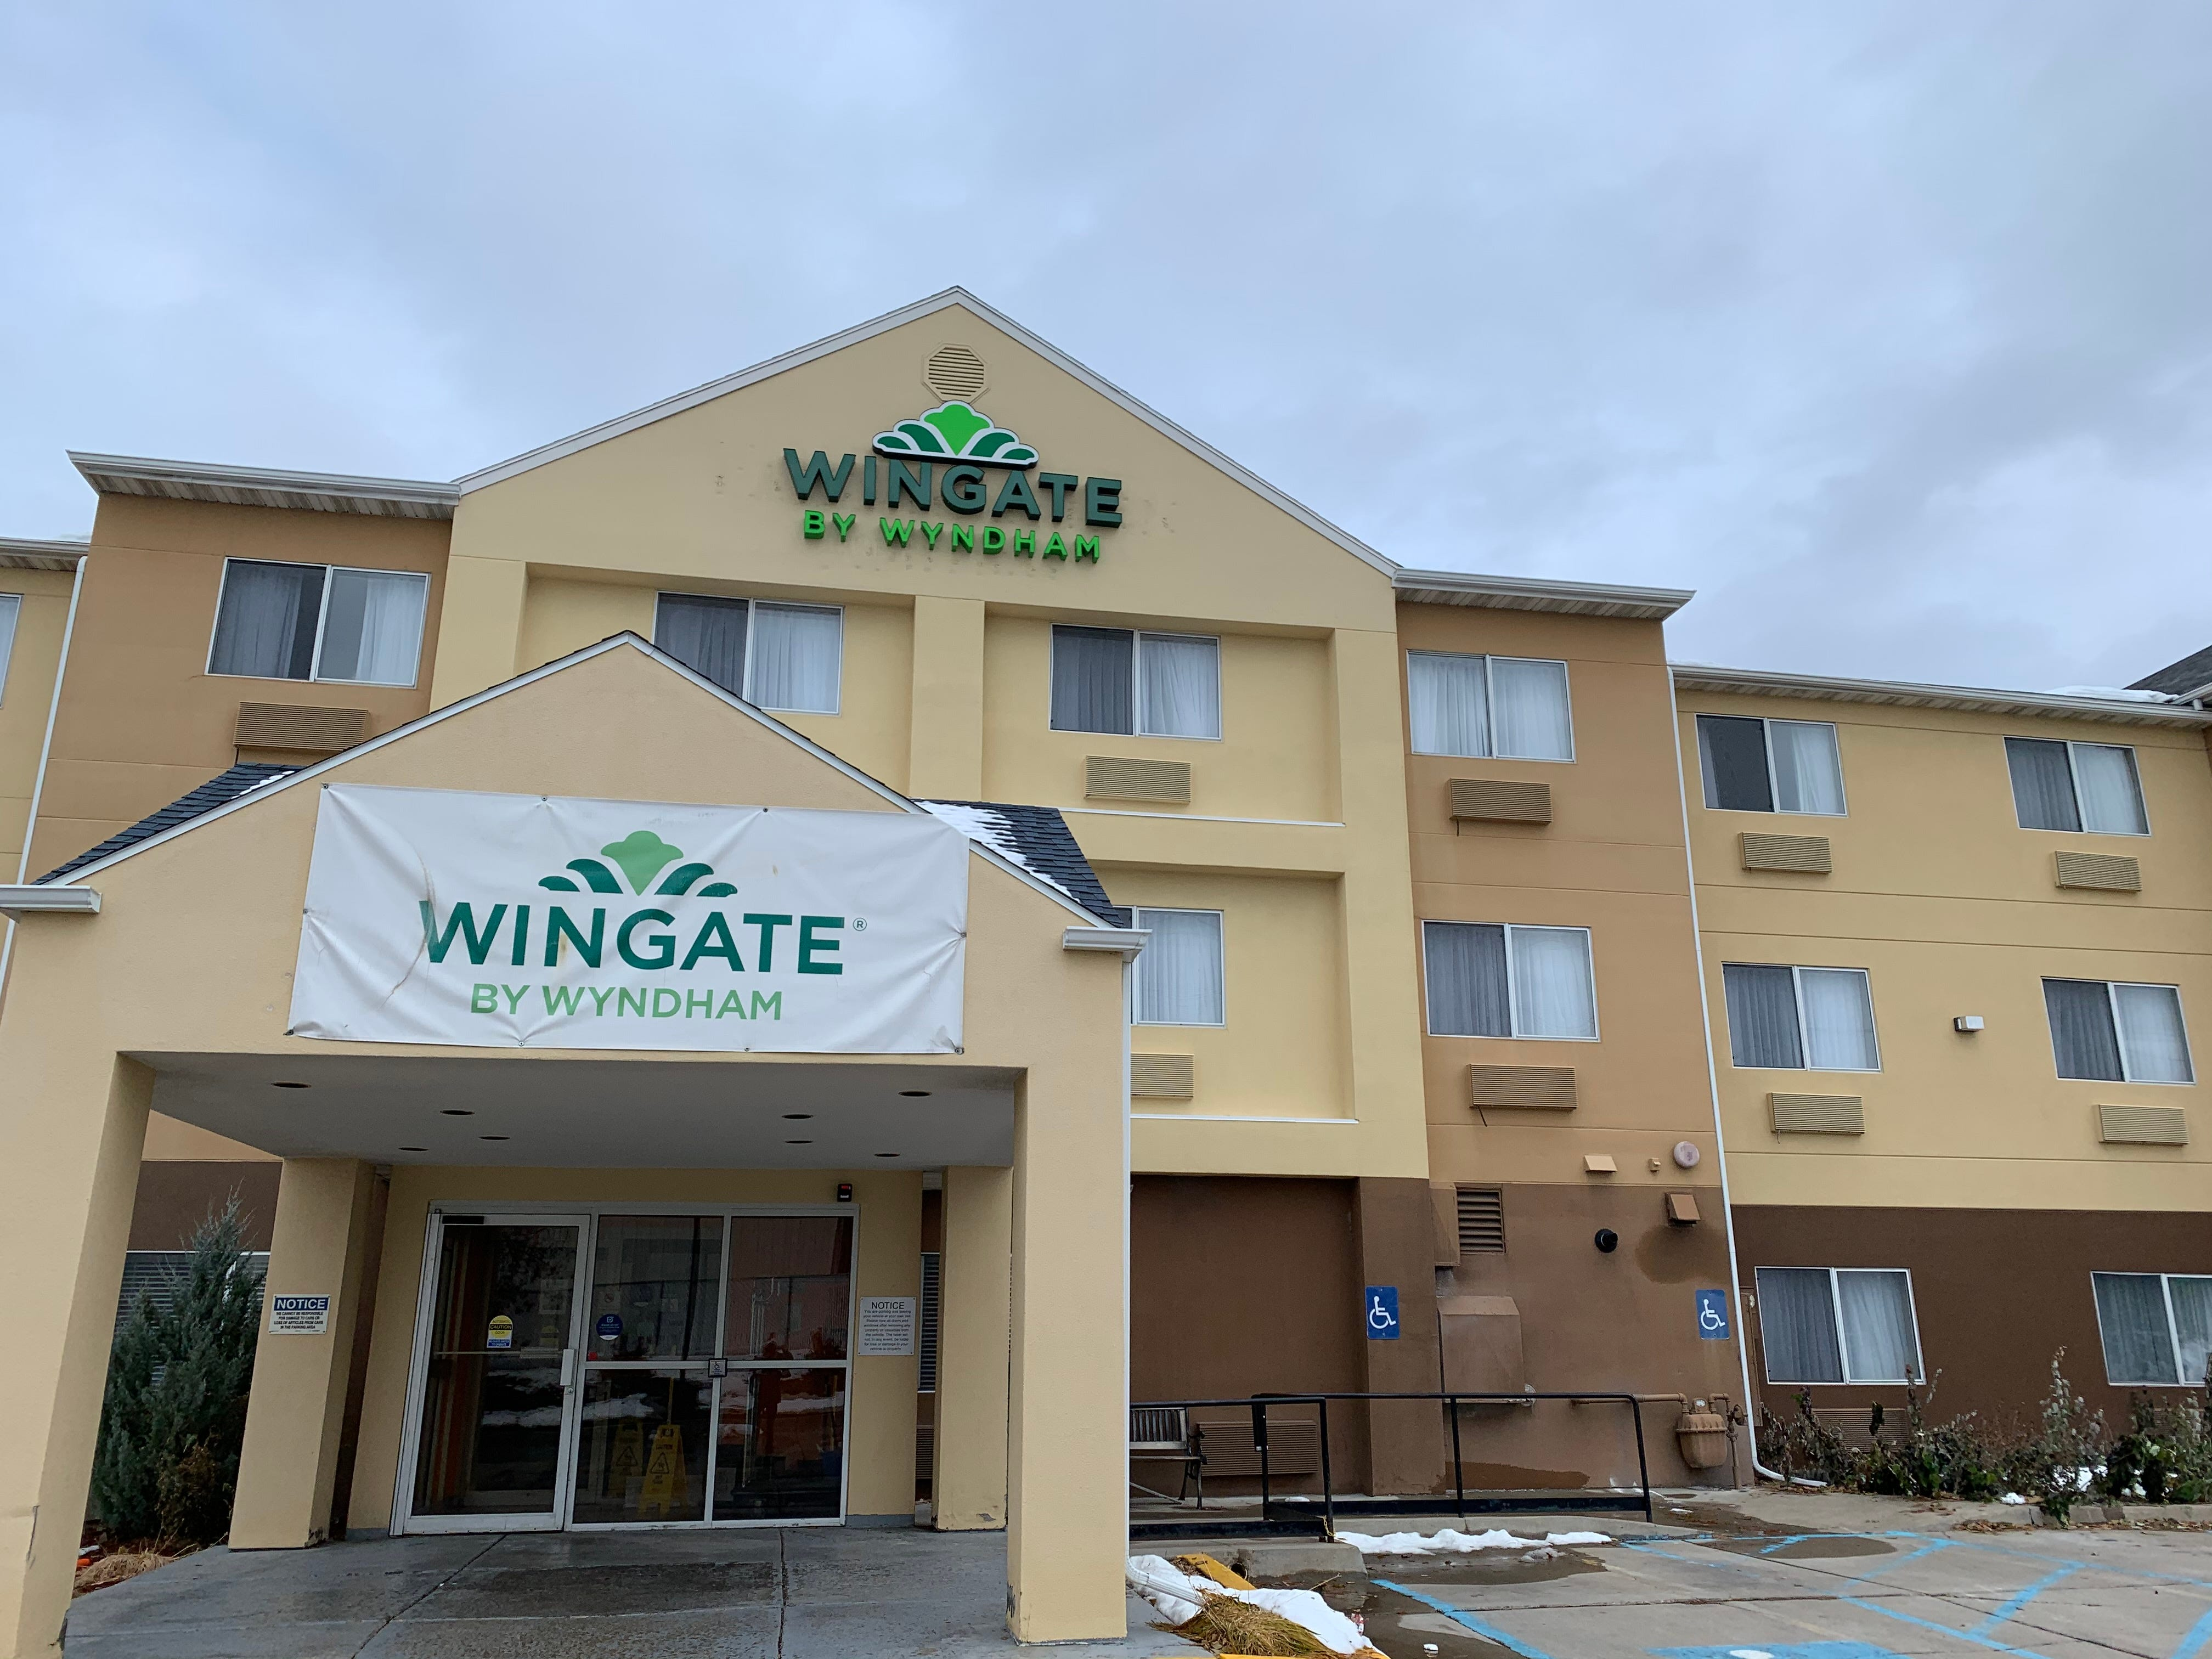 Wingate Hotel in Montana turns away Native American residents, citing COVID-19 policy